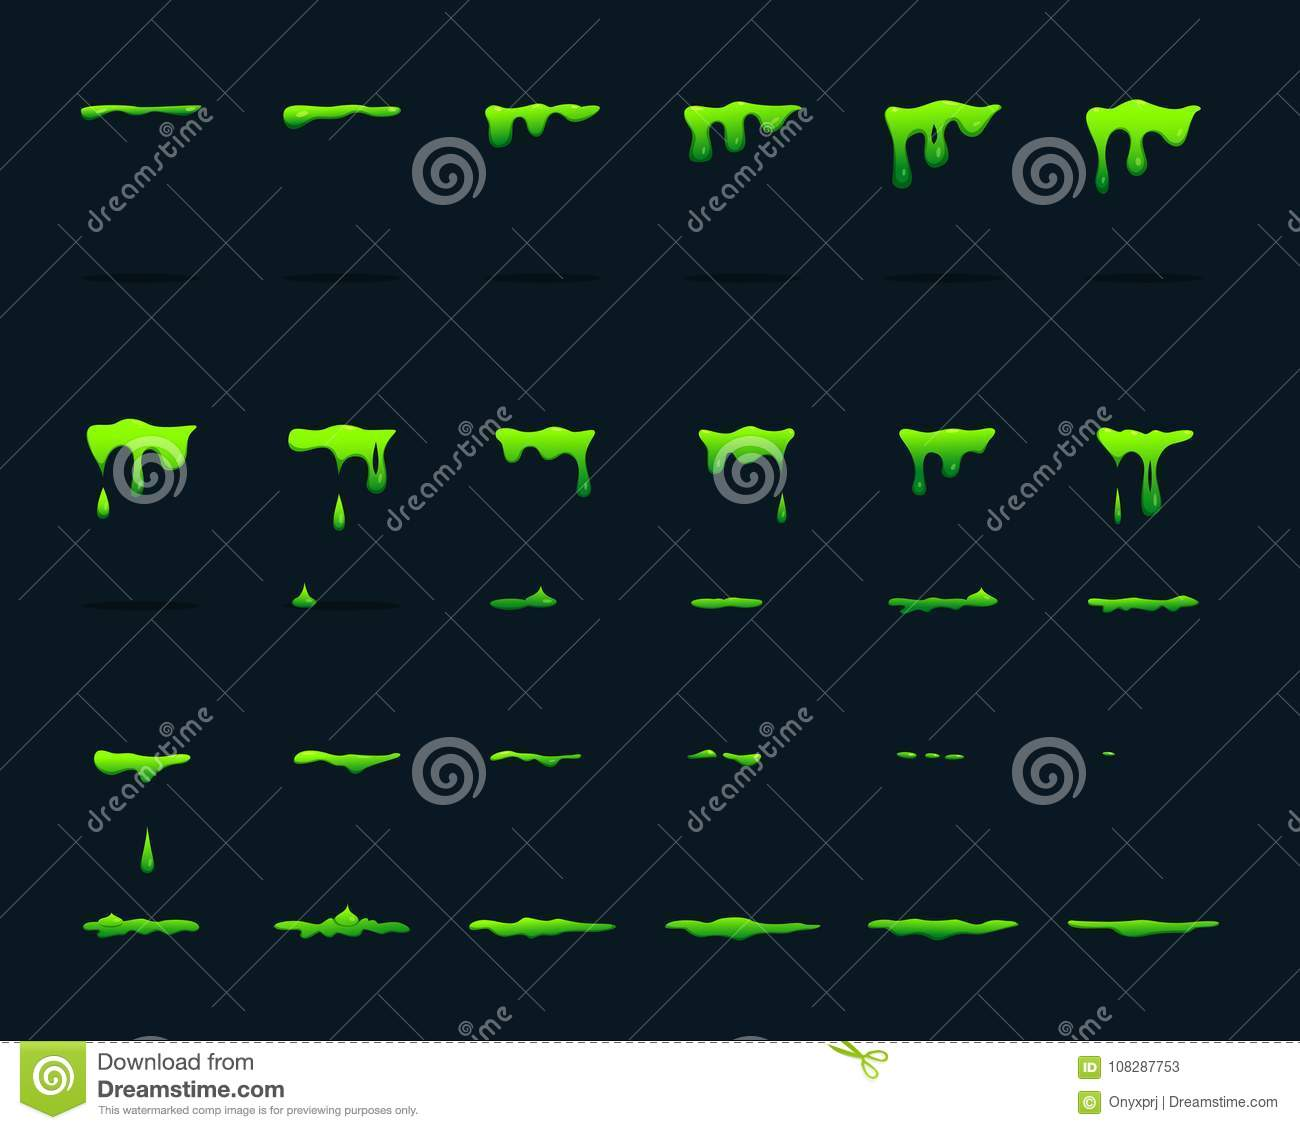 Key Frame Animation Of Dripping Acid. Vector Picture Set Stock ...